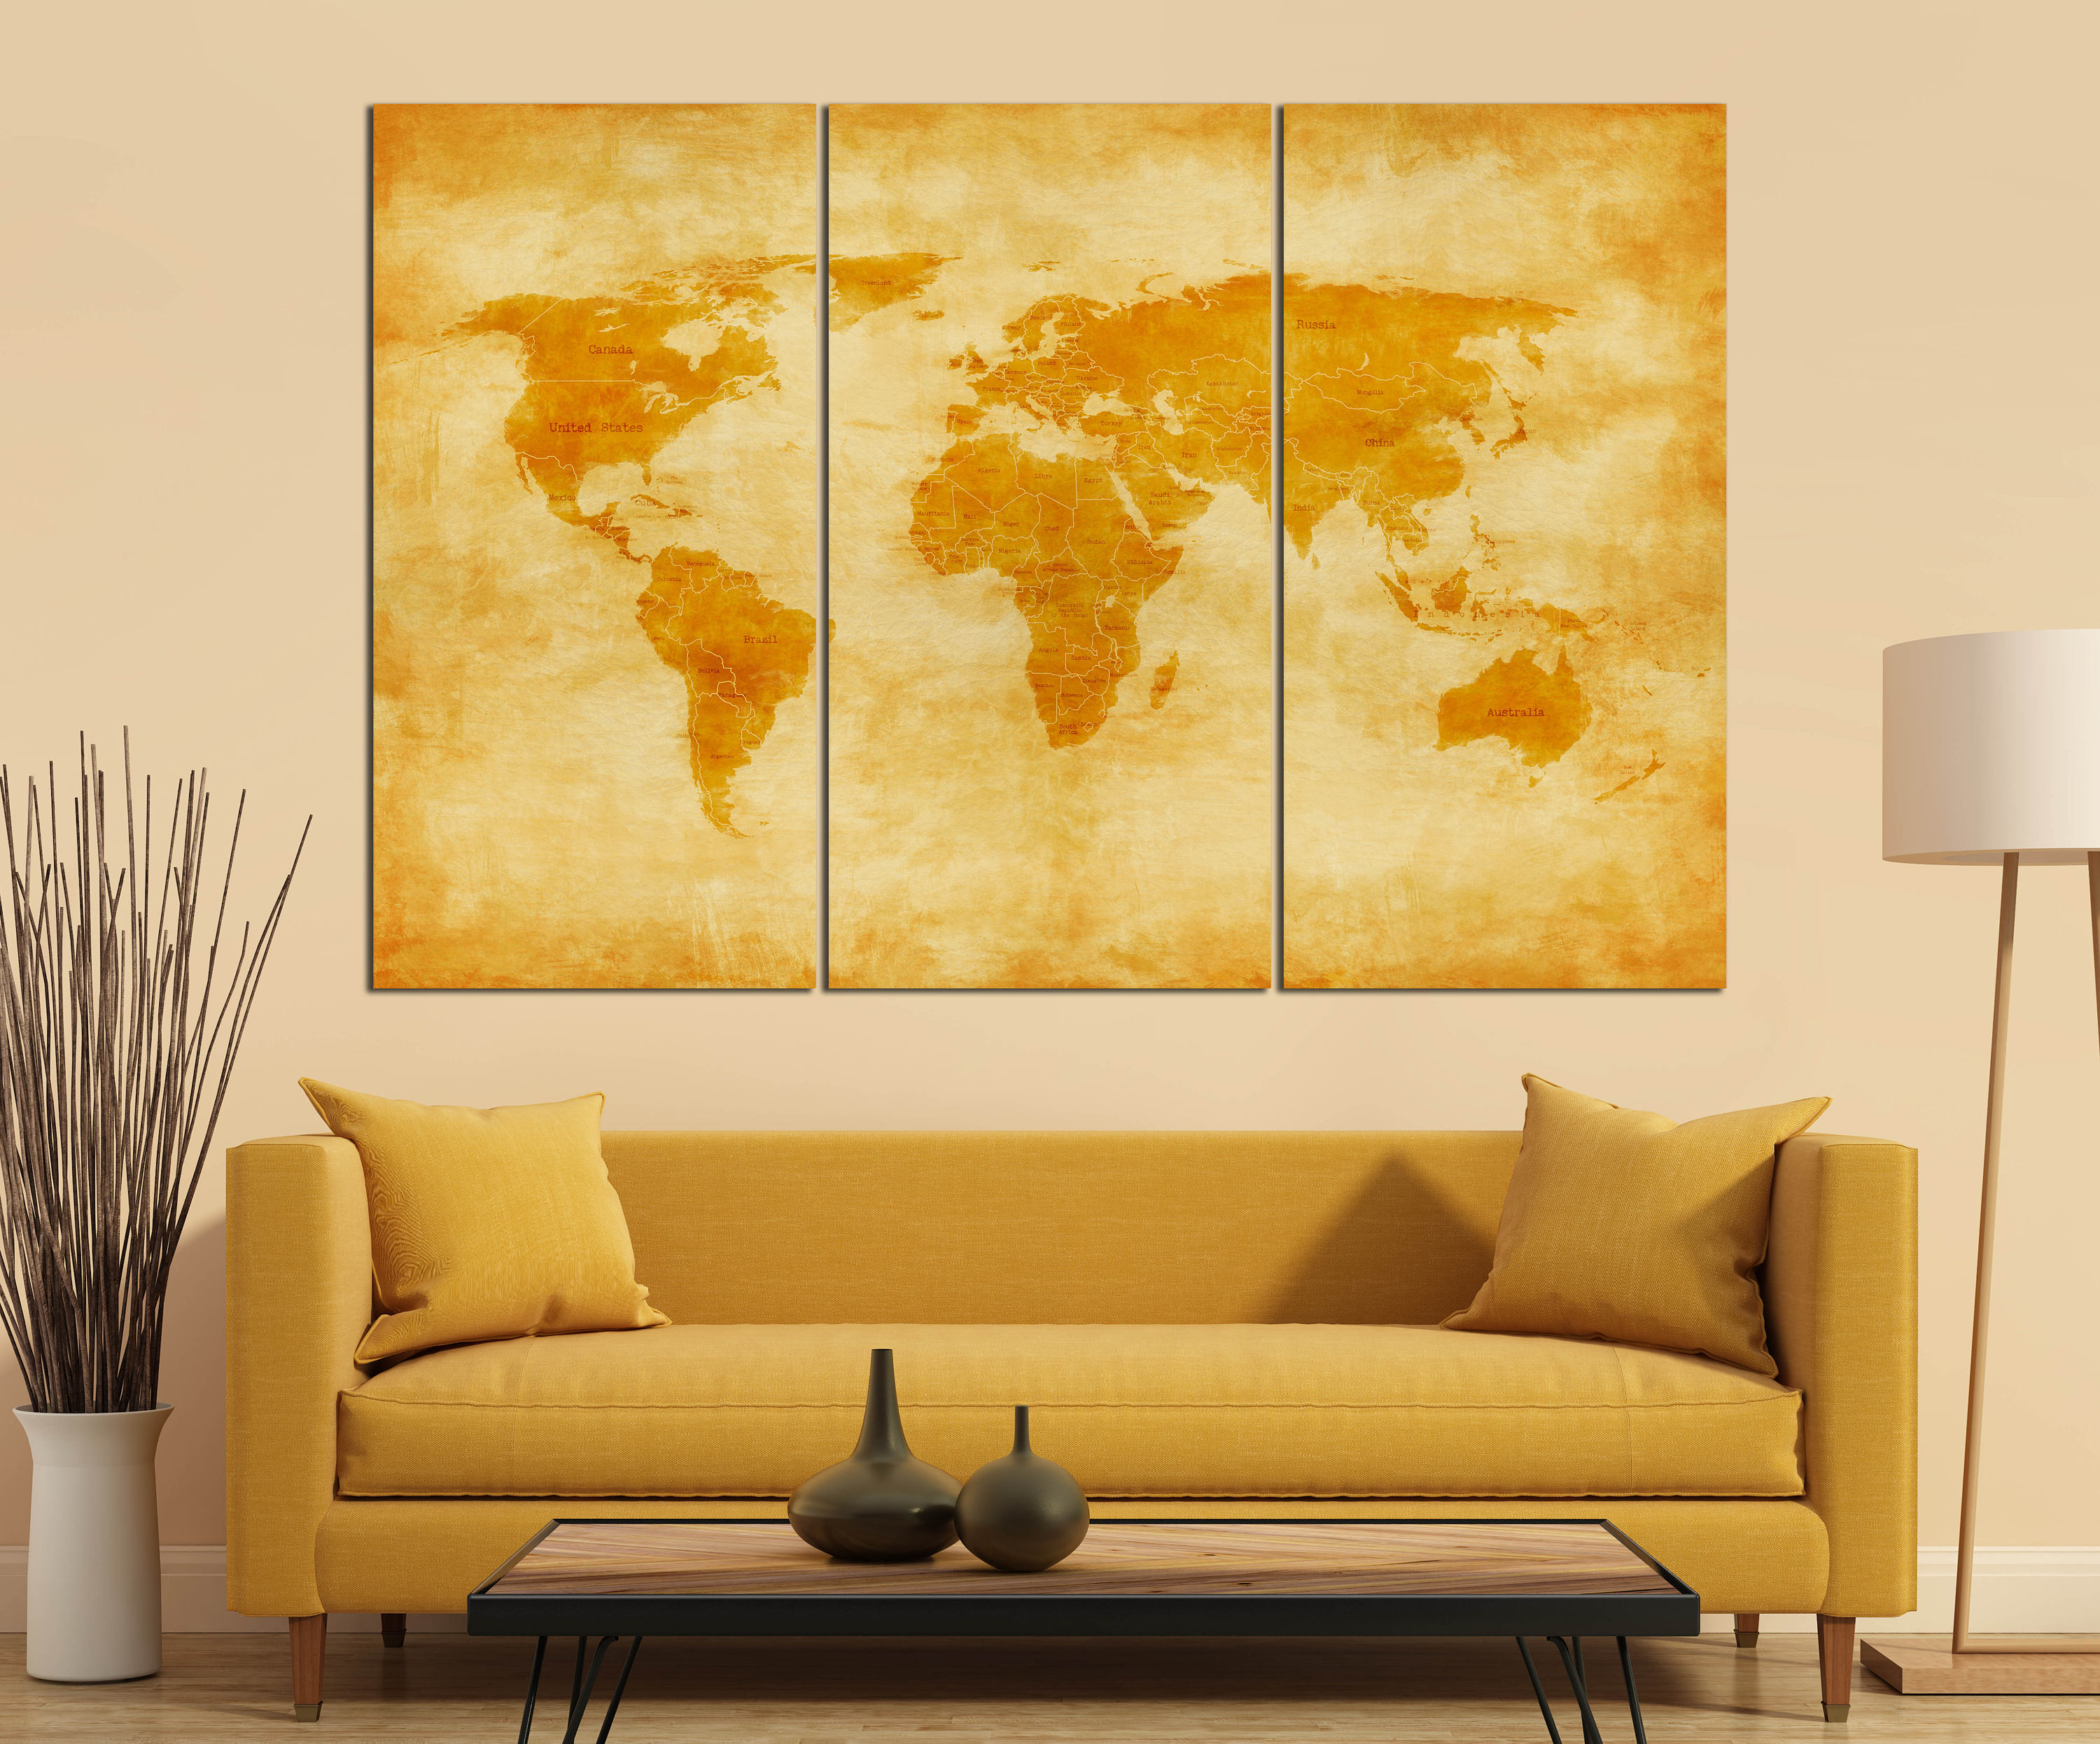 3 panel vintage world map with borders and nations leather print 3 panel vintage world map with borders and nations leather printlarge wall artextra large world mapmulti panel mapbetter than canvas gumiabroncs Images